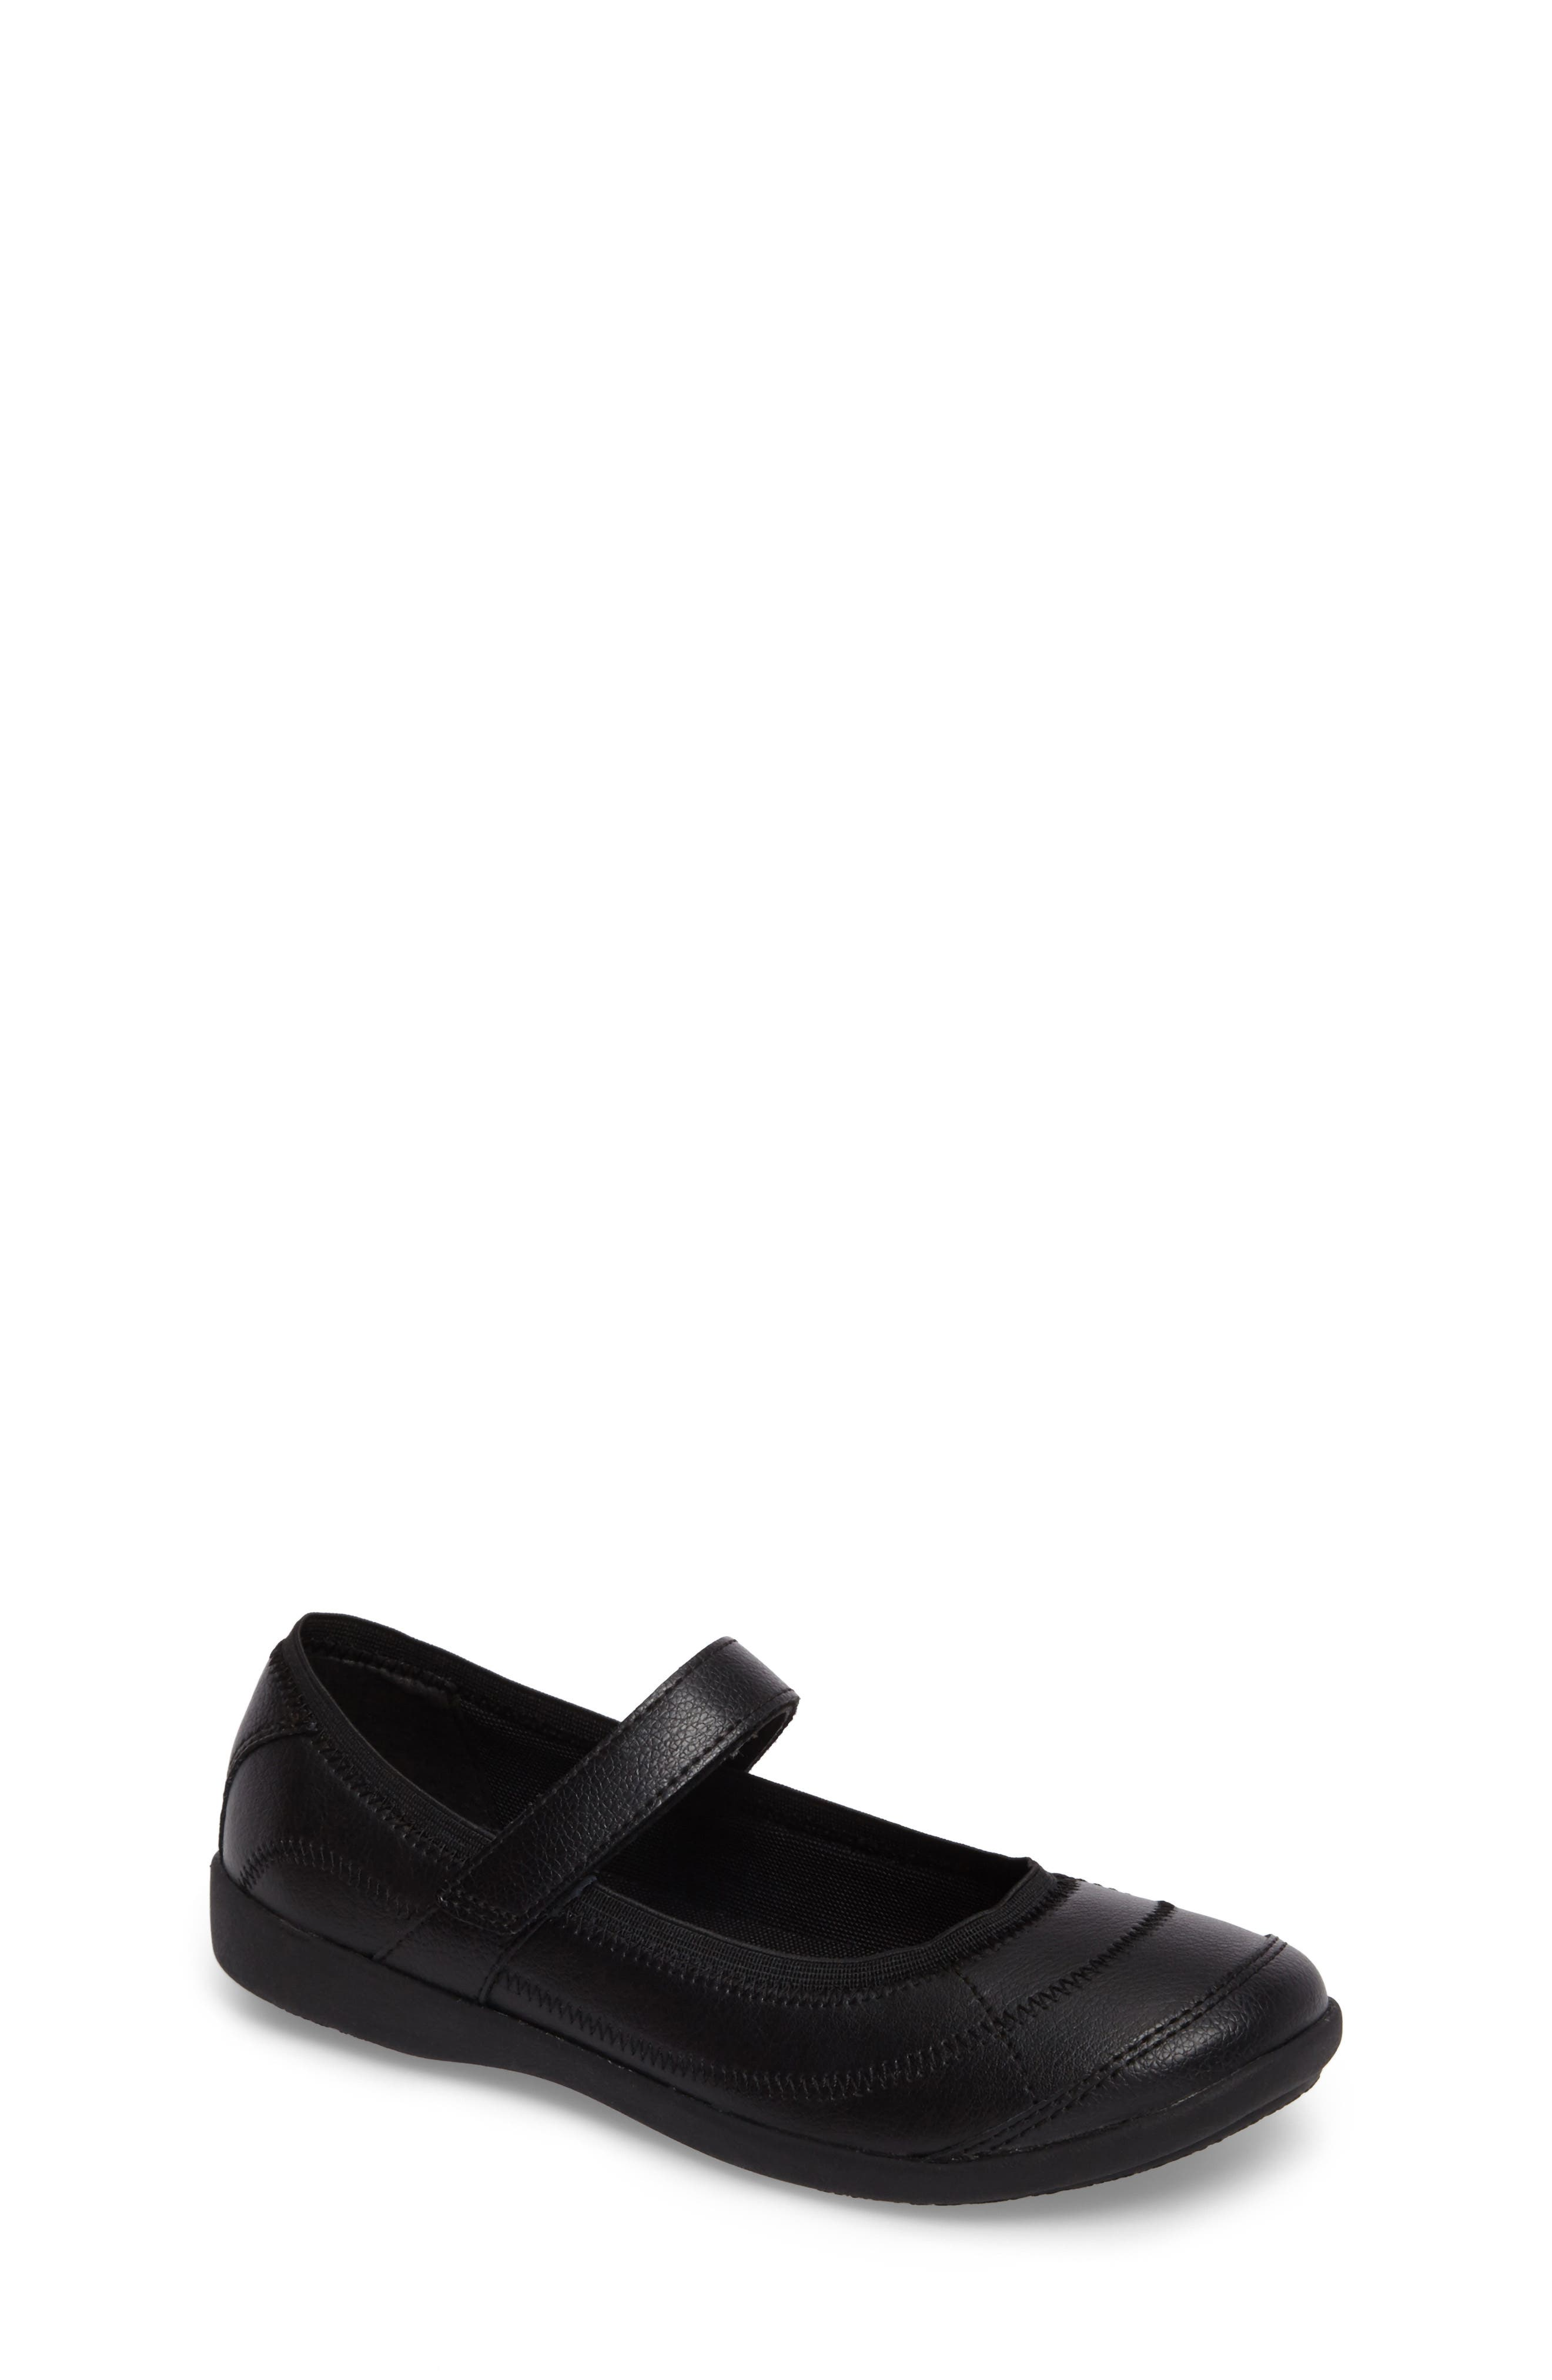 Reese Mary Jane Flat,                         Main,                         color, BLACK LEATHER